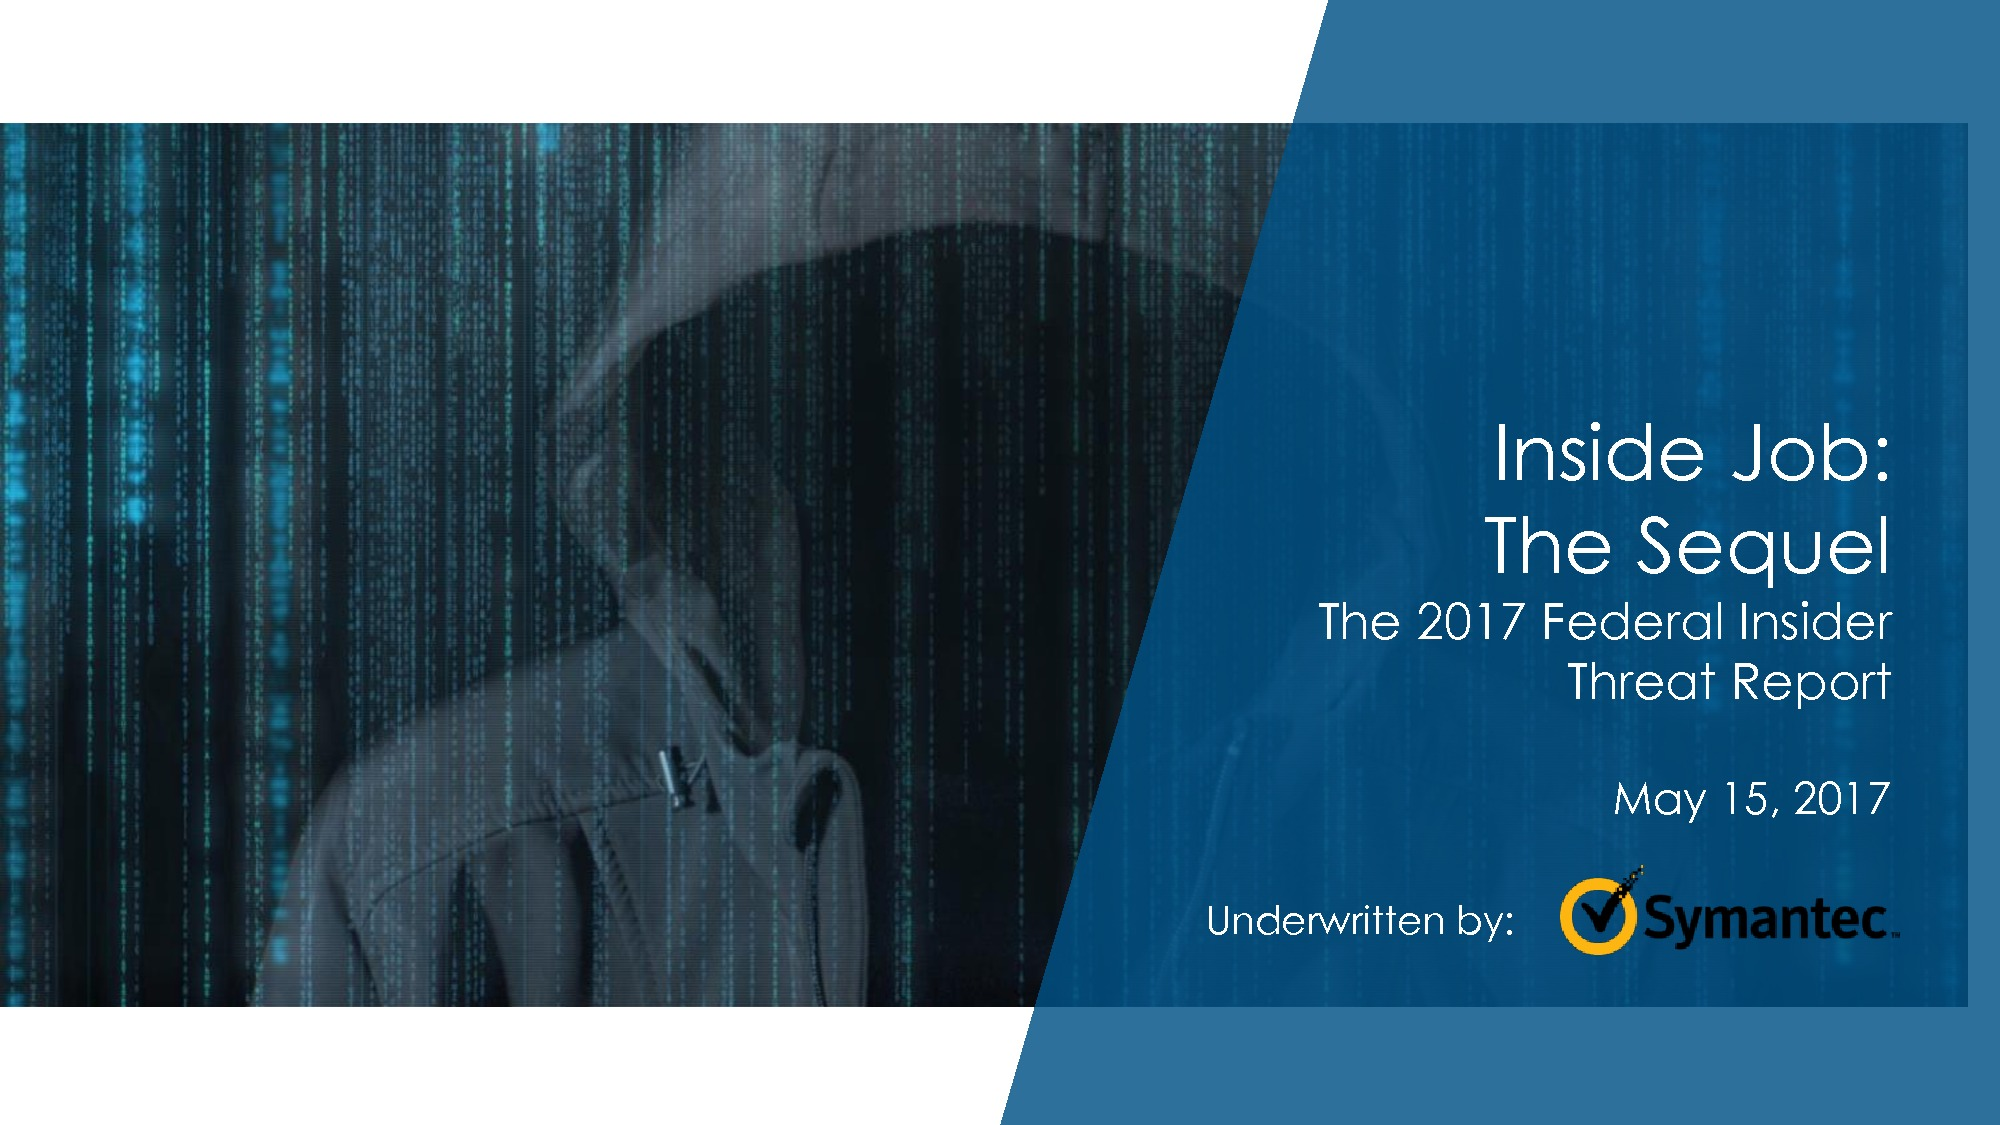 GT - Insight - 2018 Workforce Channel - The 2017 Federal Insider Threat Report